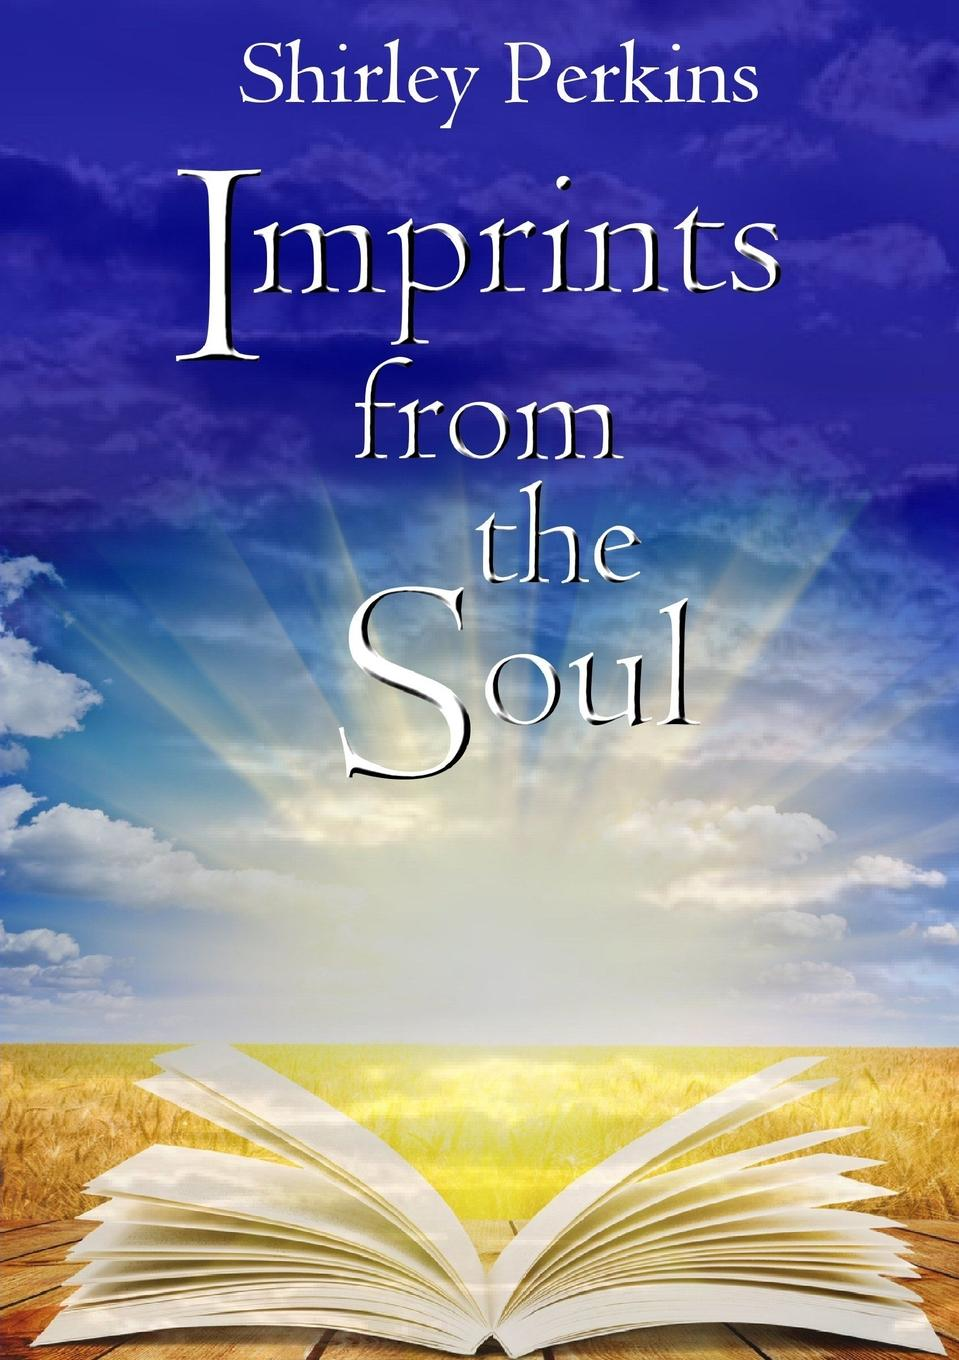 Shirley Perkins Imprints from the Soul do chong poep sa cold heart thawing the zen poetry of do chong an anthology of poetry about living in the modern world